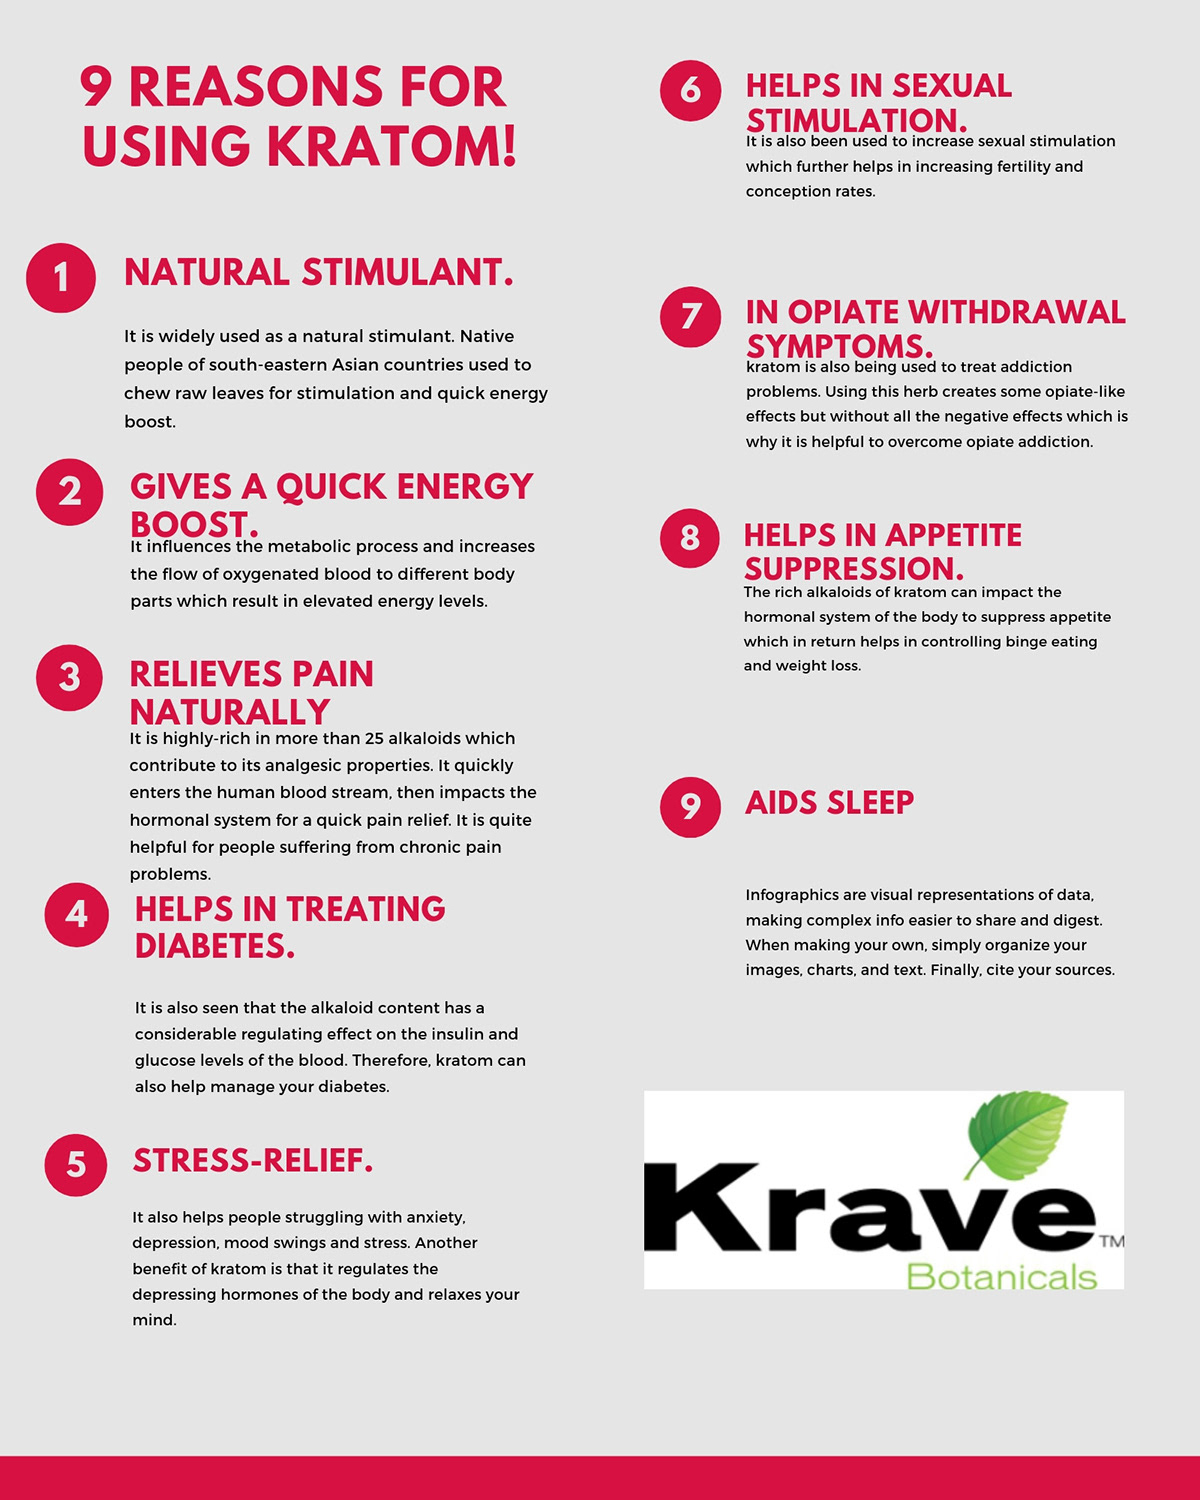 Reasons for using Kratom